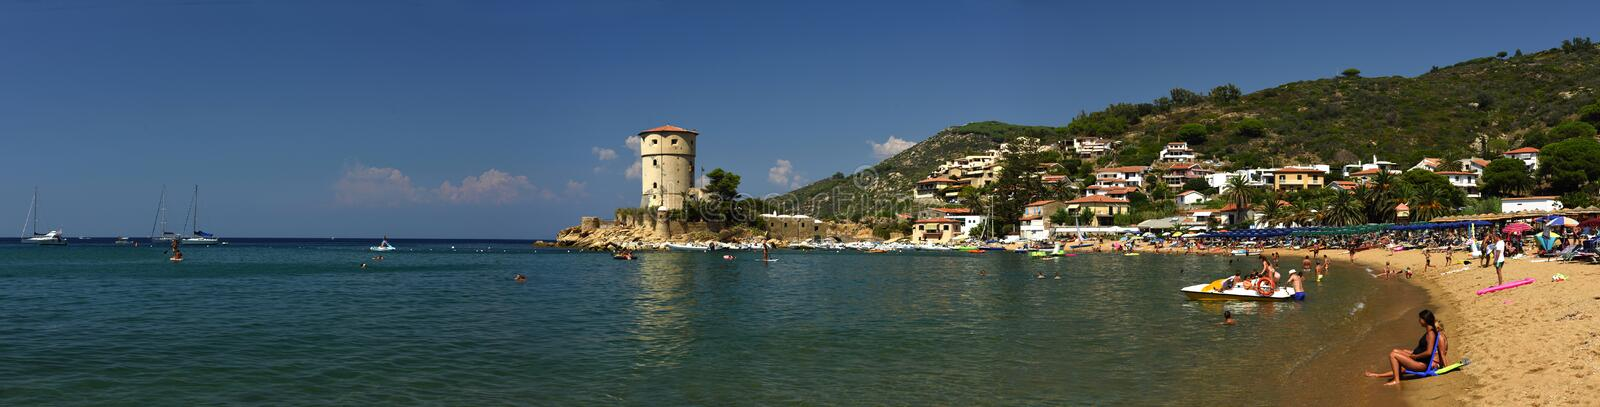 Giglio Campese, Tuscany, Italy stock image